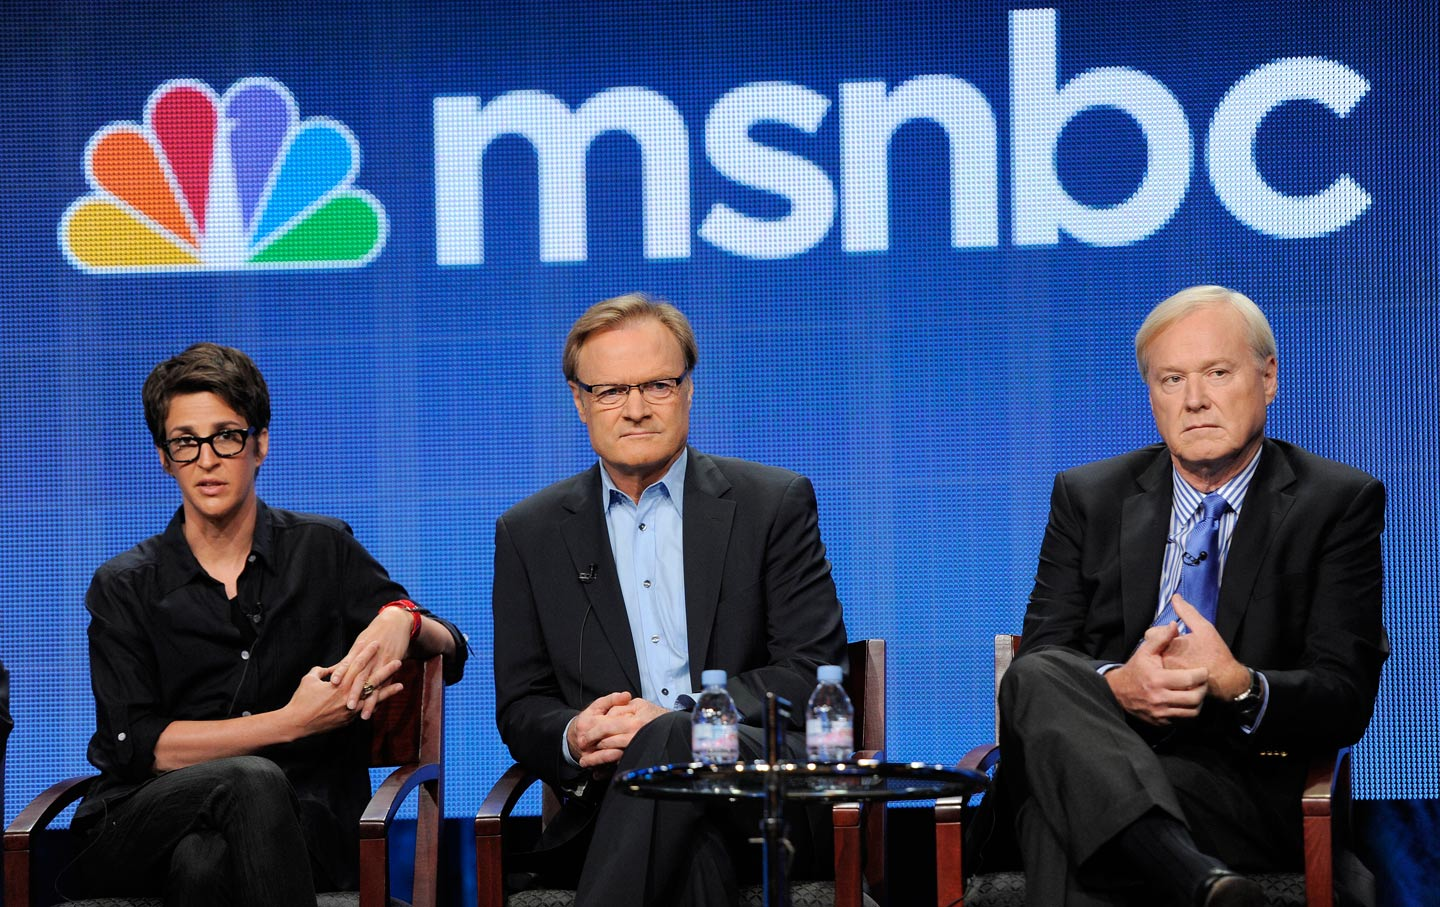 MSNBC hosts Rachel Maddow, left, Lawrence O'Donnell, center, and Chris Matthews. (AP Photo/Chris Pizzello)